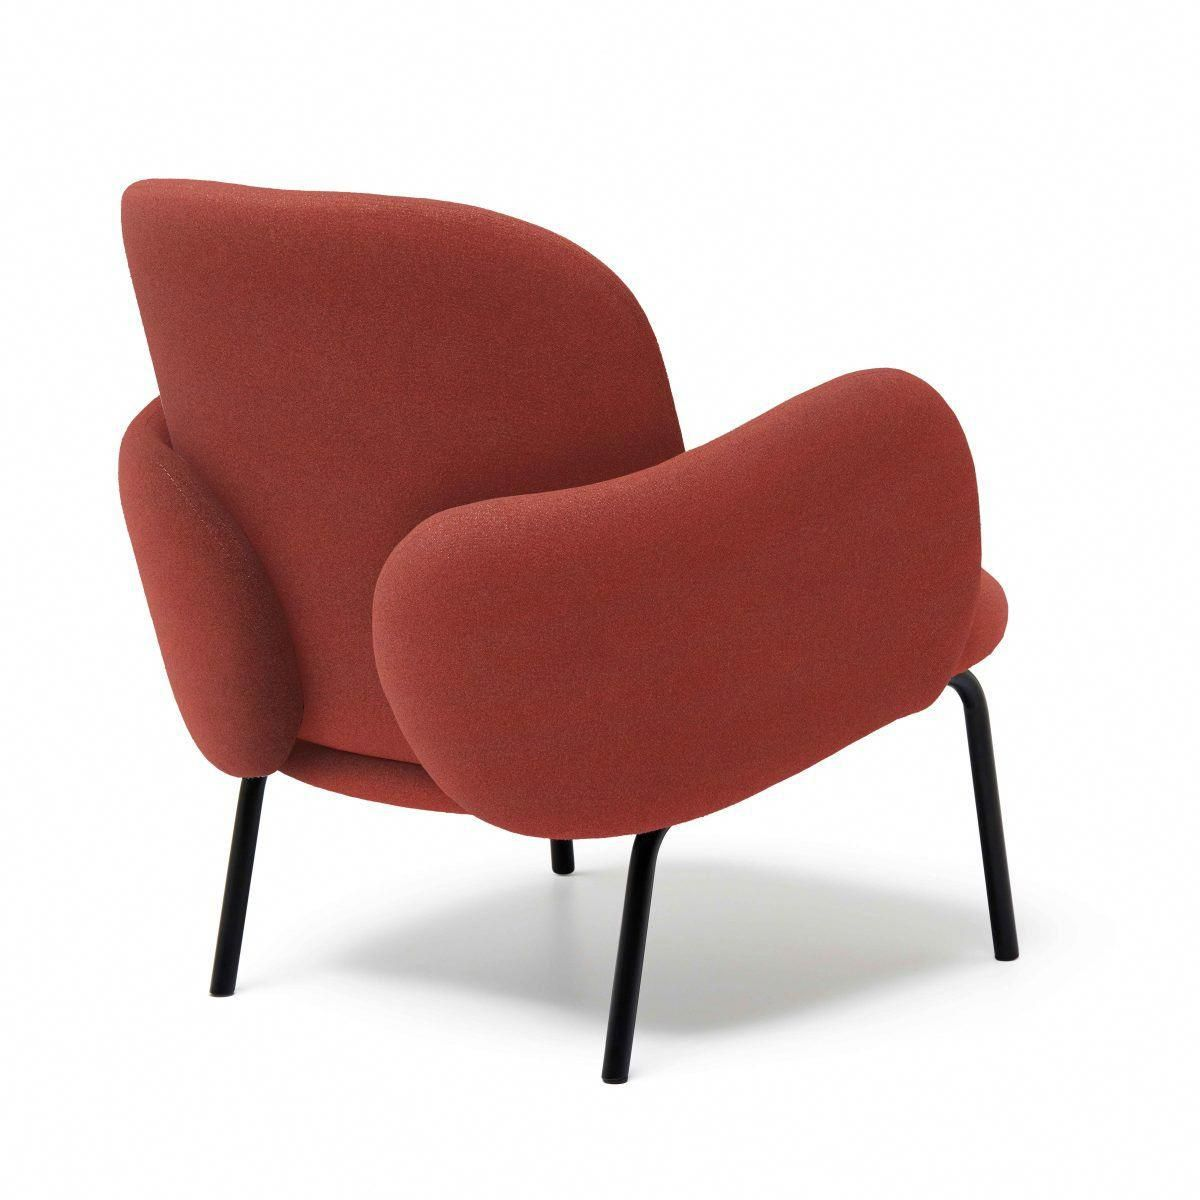 Look At This Interesting Cool Chair What An Artistic Design And Style Coolchair Comfy Living Room Furniture Furniture Comfy Chairs